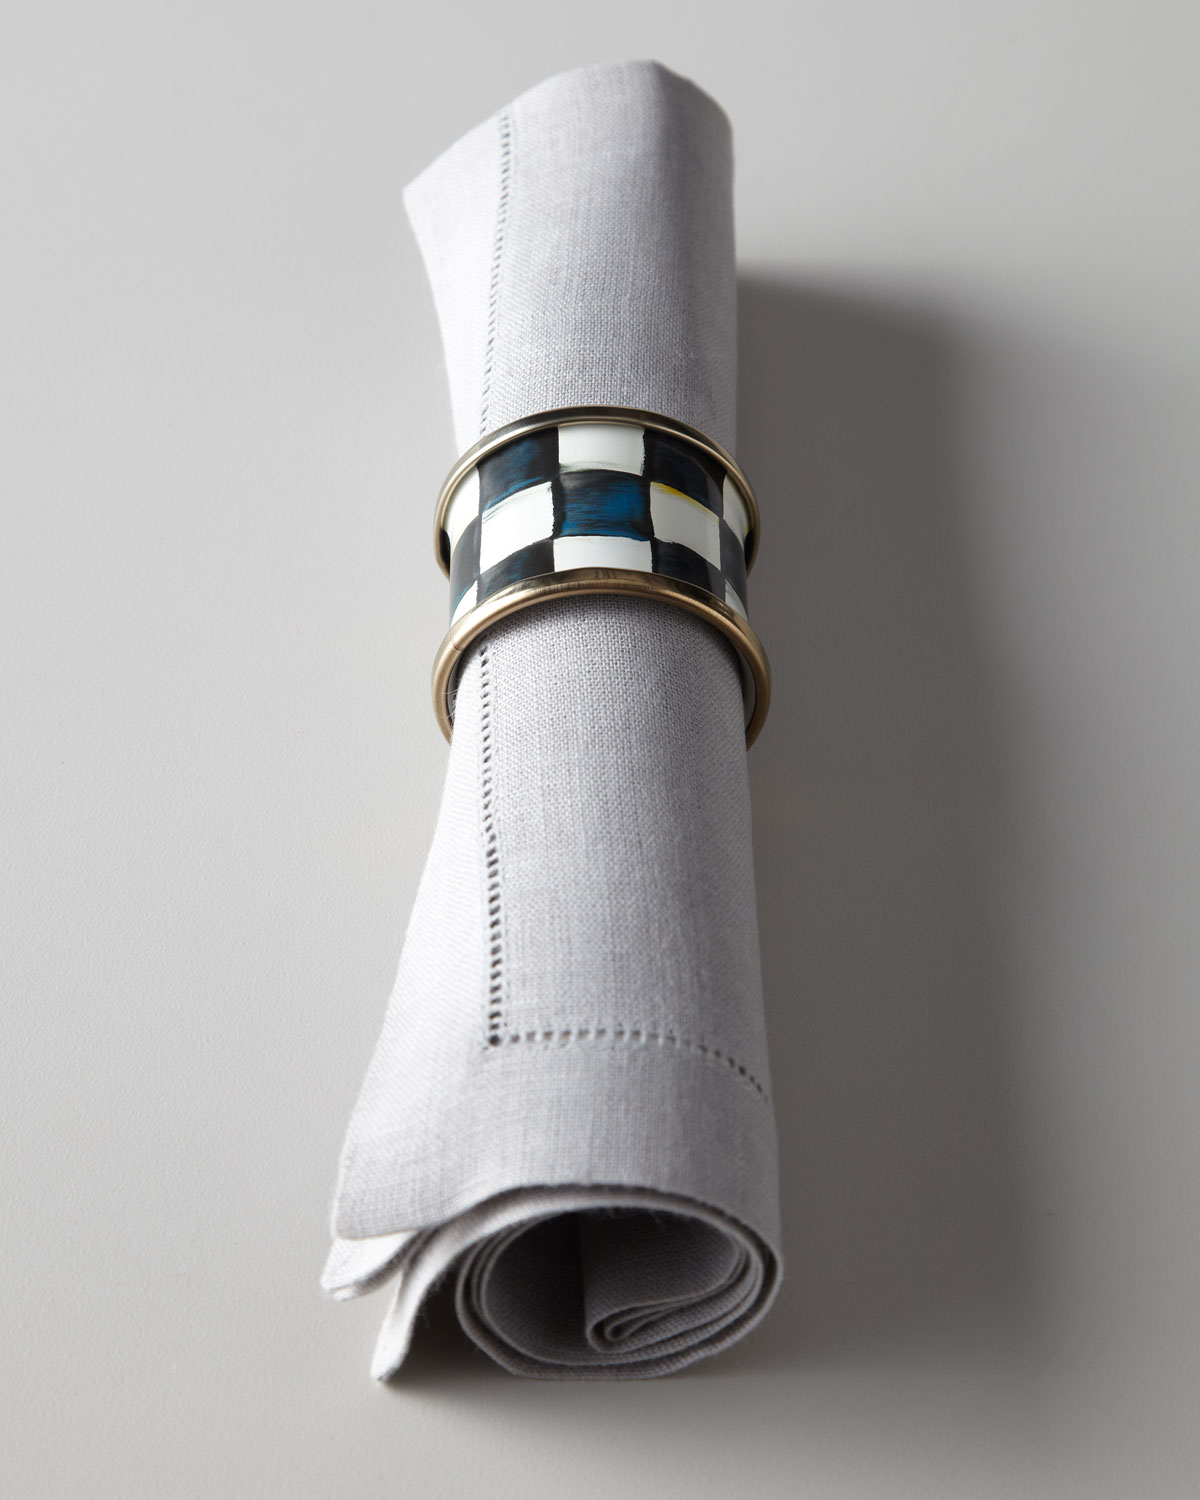 Mackenzie Childs Four Courtly Check Napkin Rings